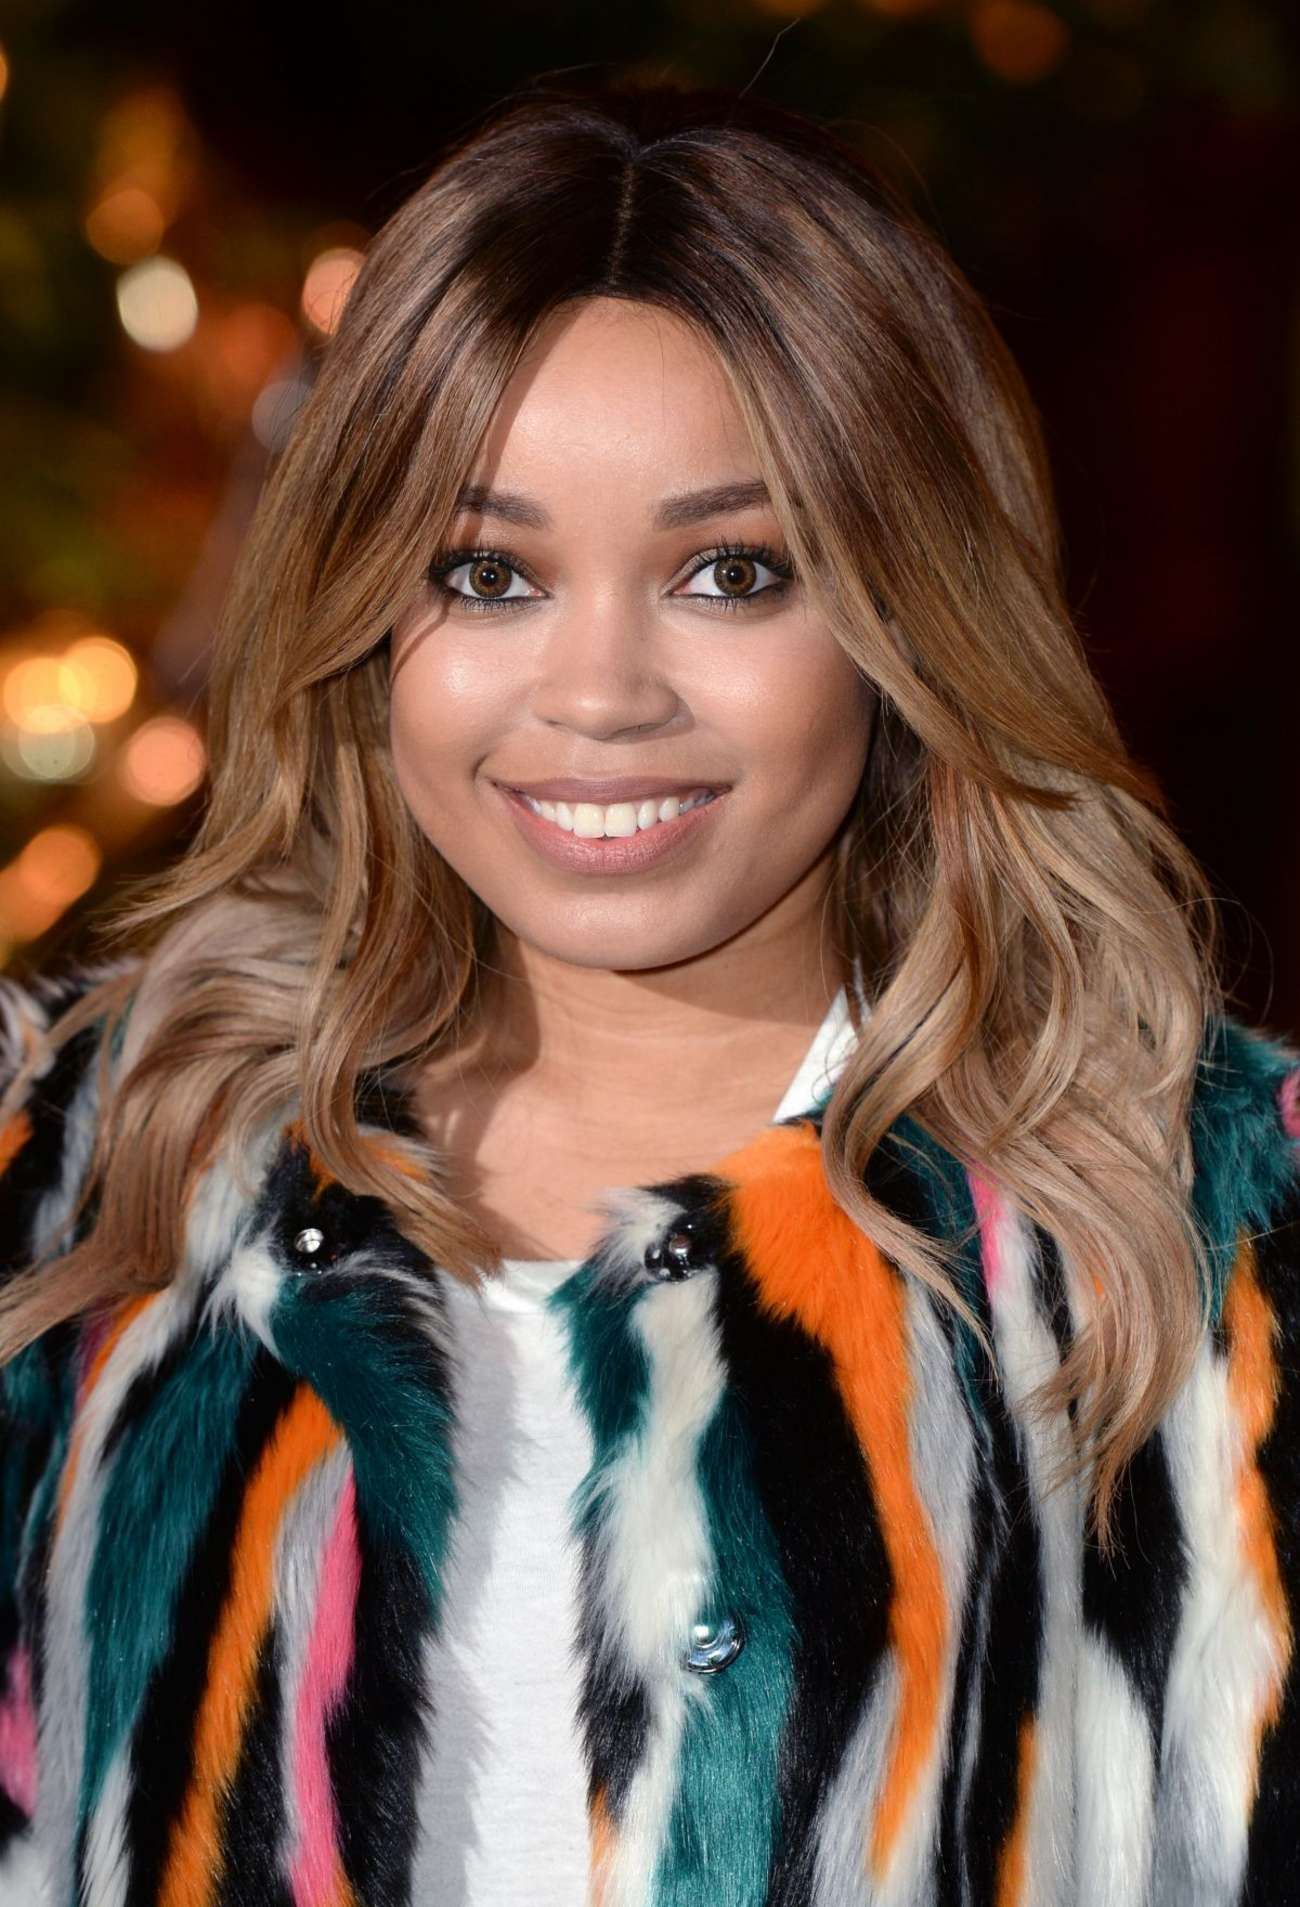 Dionne Bromfield 2015 : Dionne Bromfield: Hogwarts in The Snow Launch -03